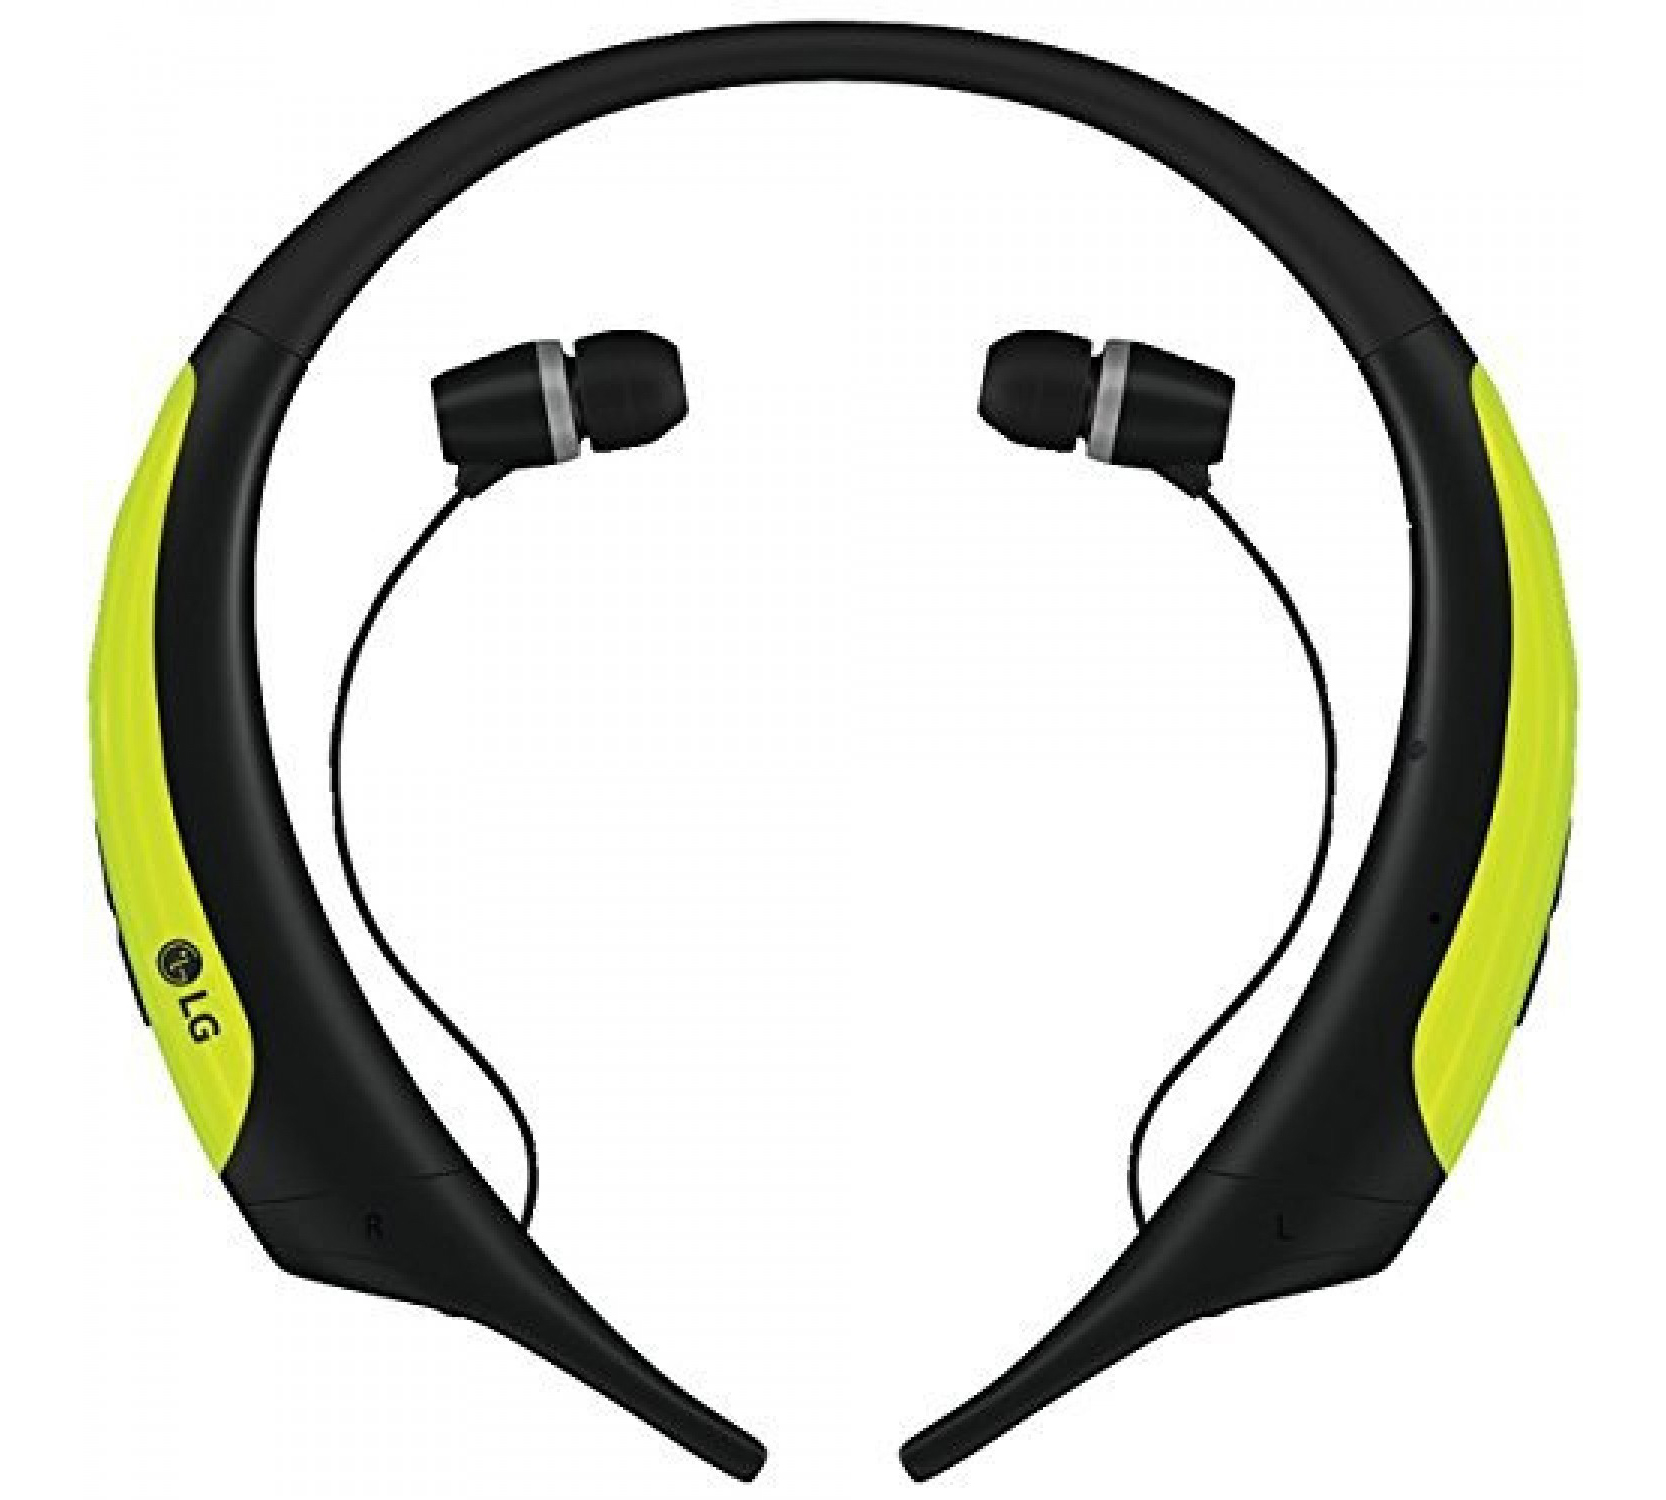 LG HBS-850 TONE Active Premium Bluetooth Stereo Headset Lime (Water & Sweat Resistant με αναδιπλούμενο καλώδιο)